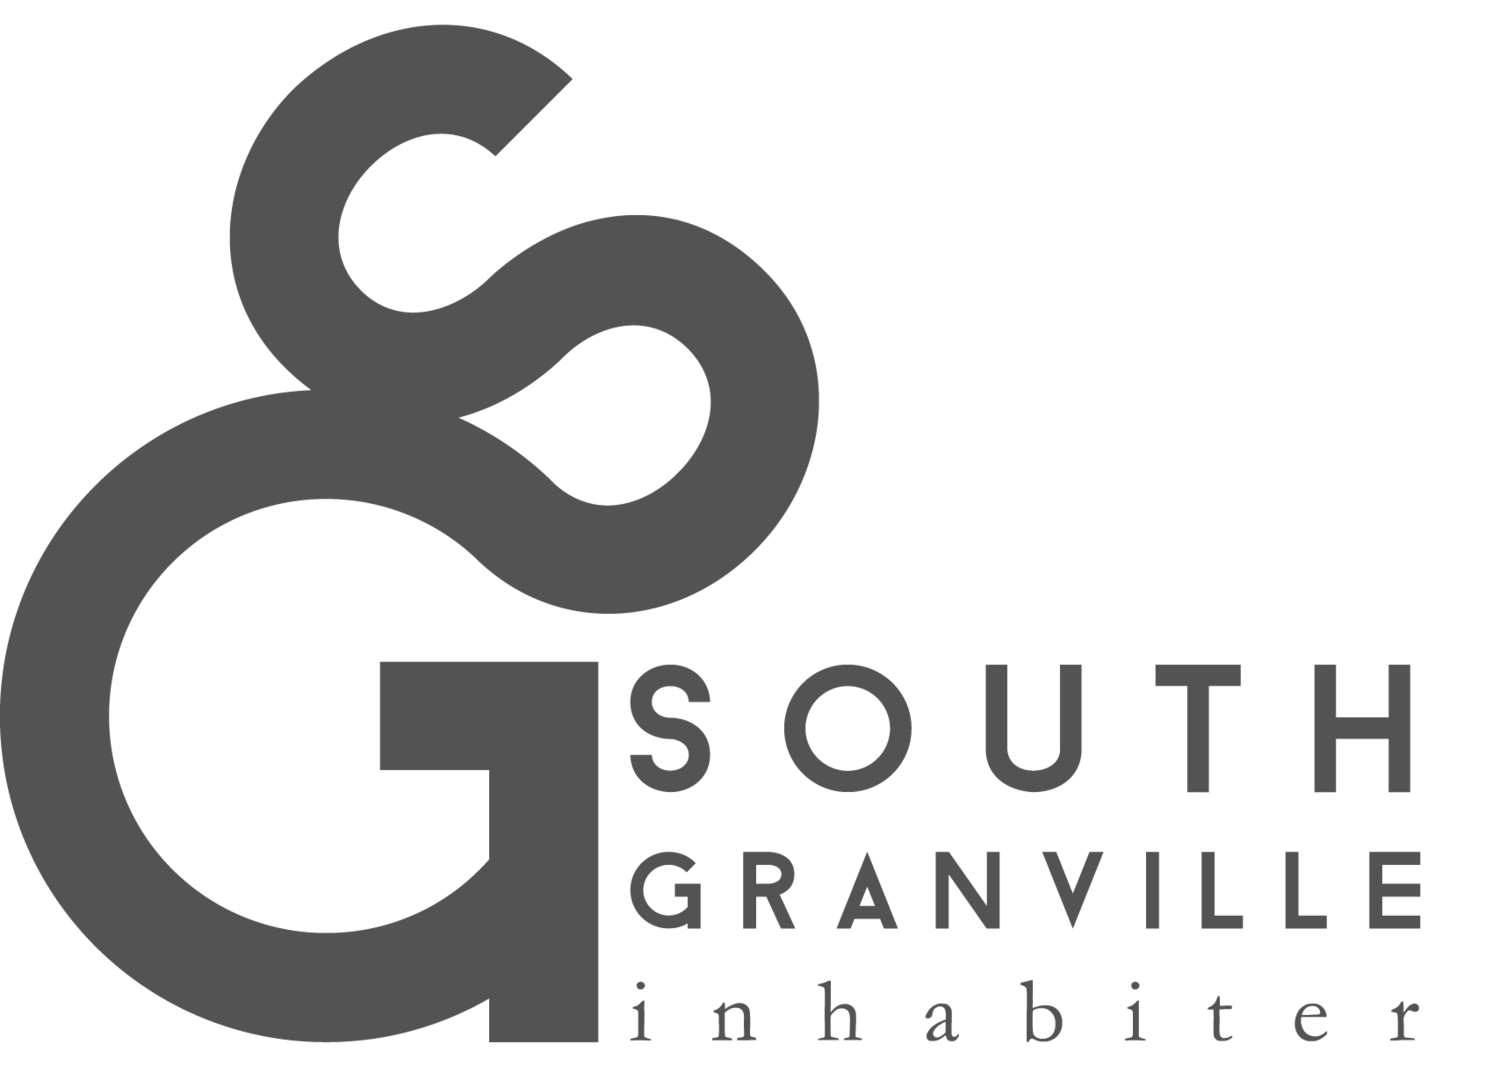 South Granville Inhabiter